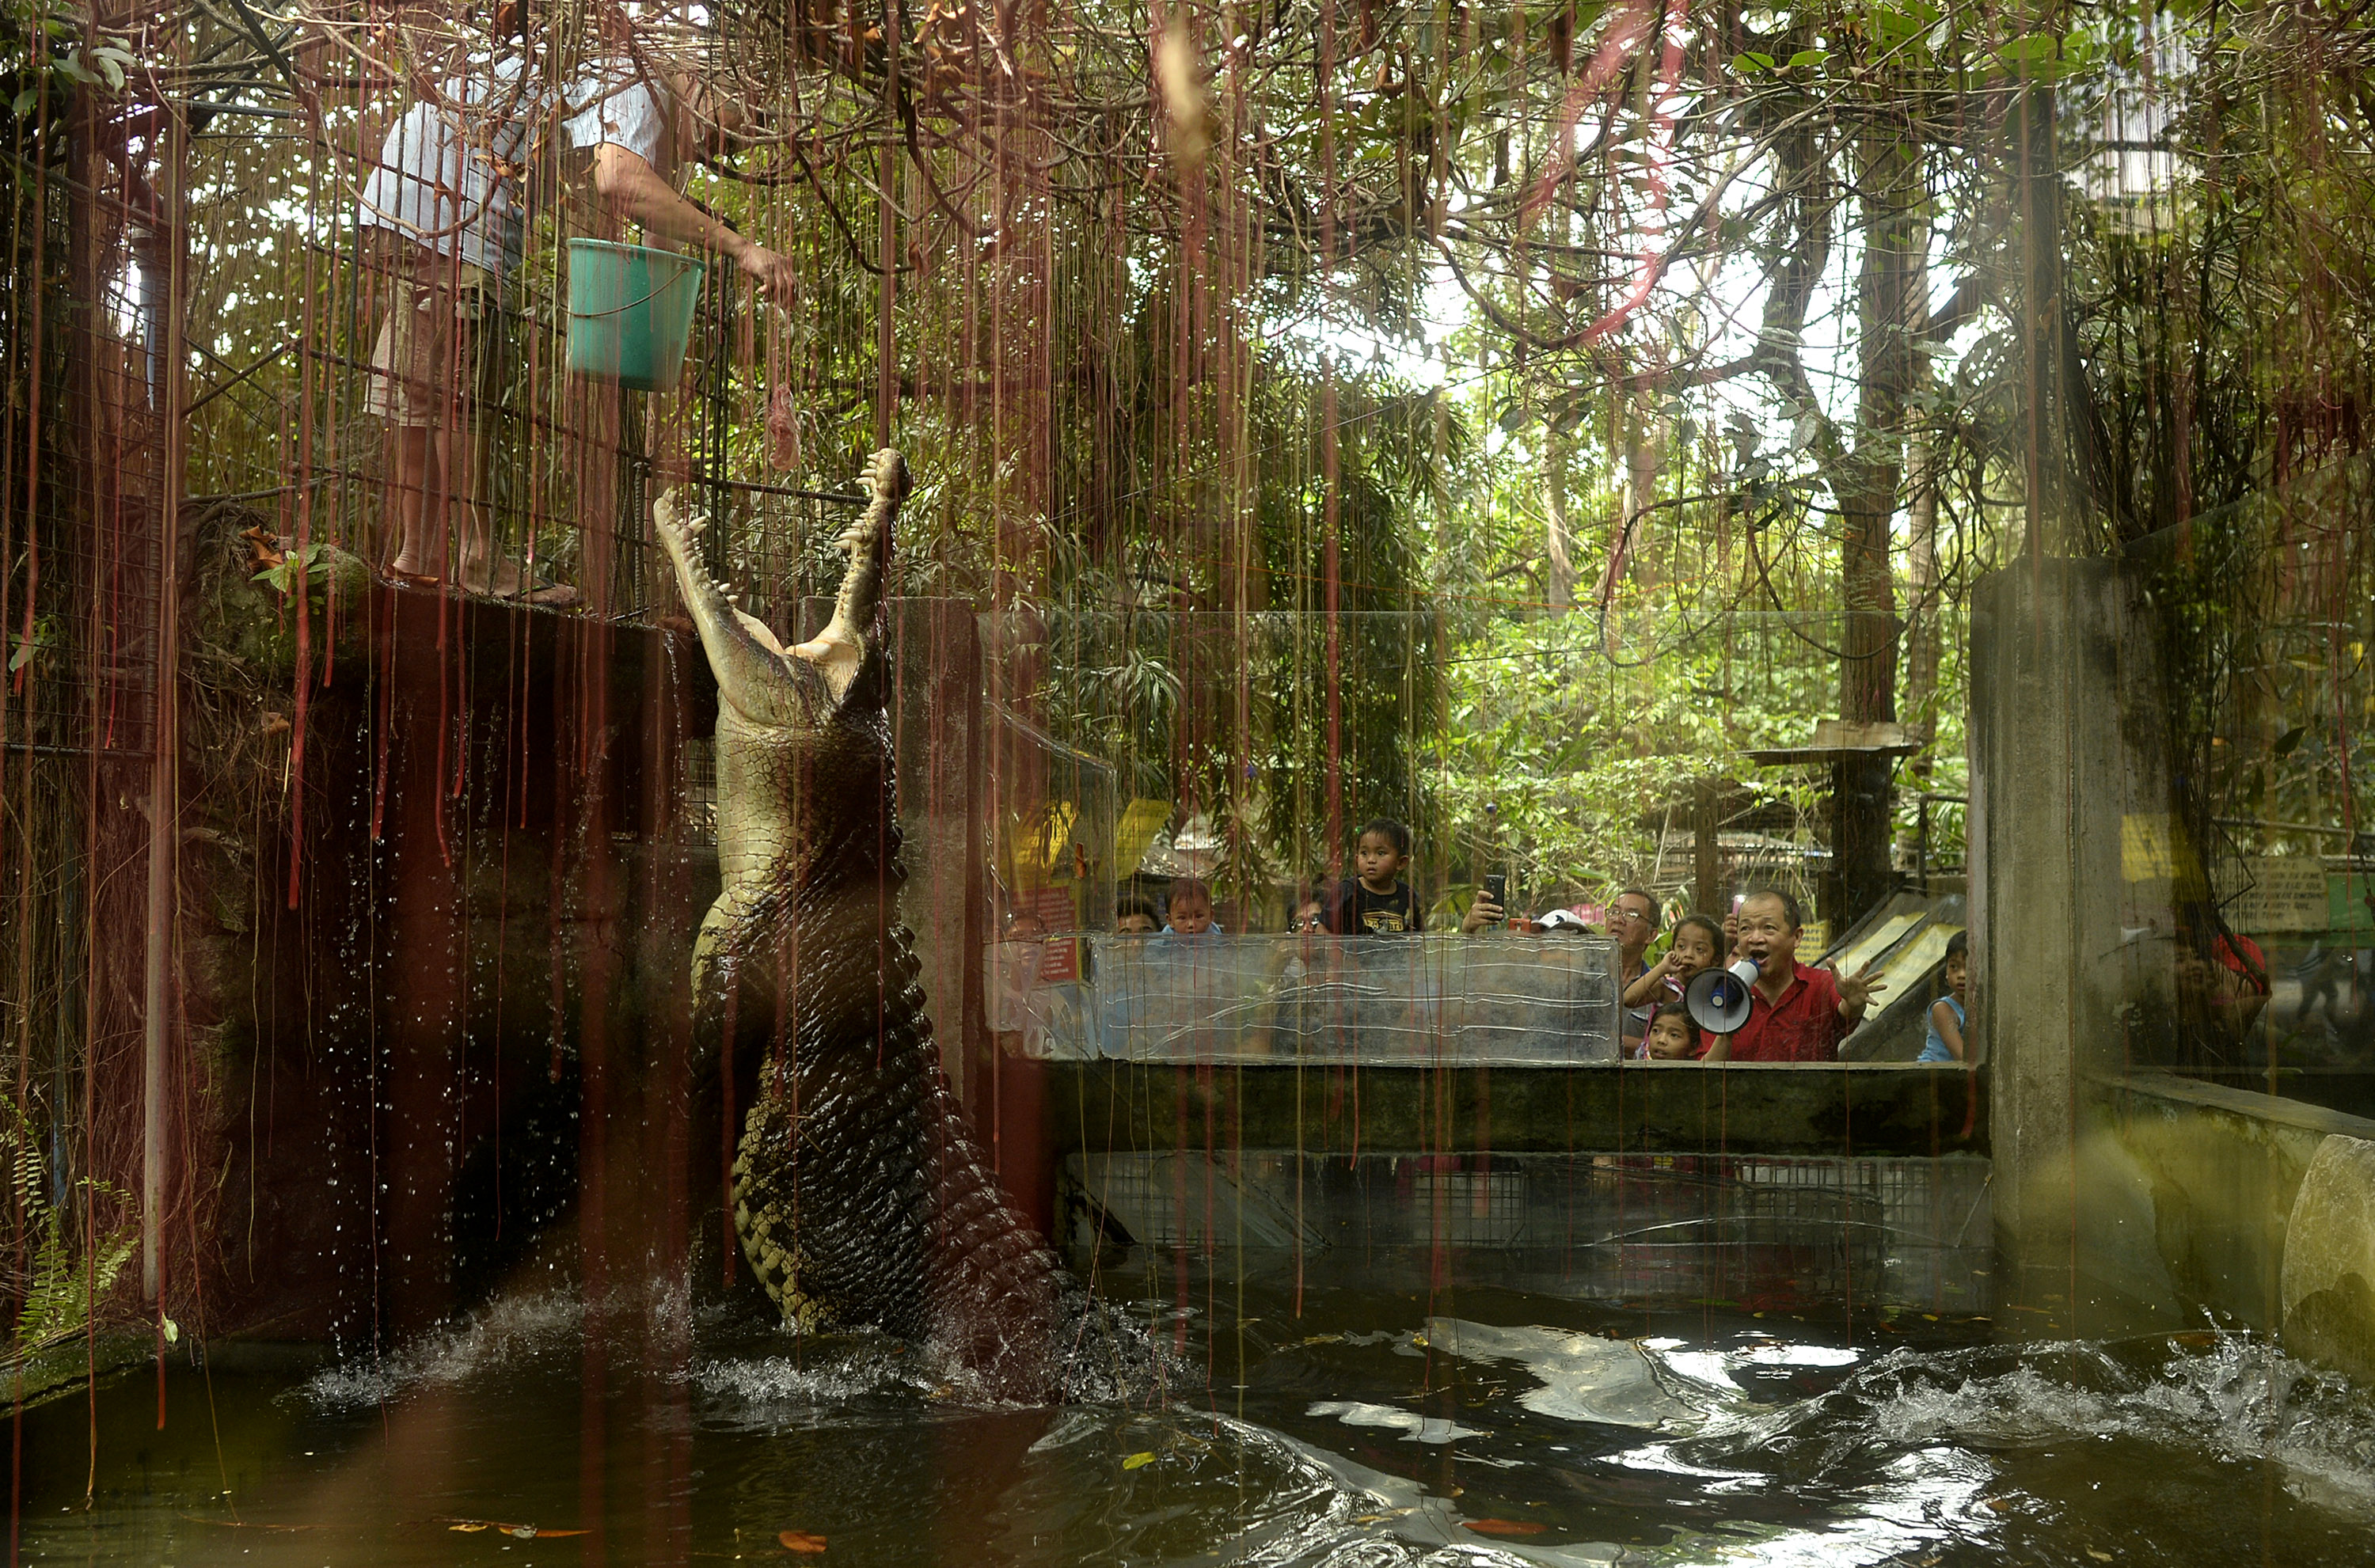 A worker feeds a crocodile named Shaquille at an enclosure at the Malabon Zoo in Manila, Philippines, on March 3, 2016.